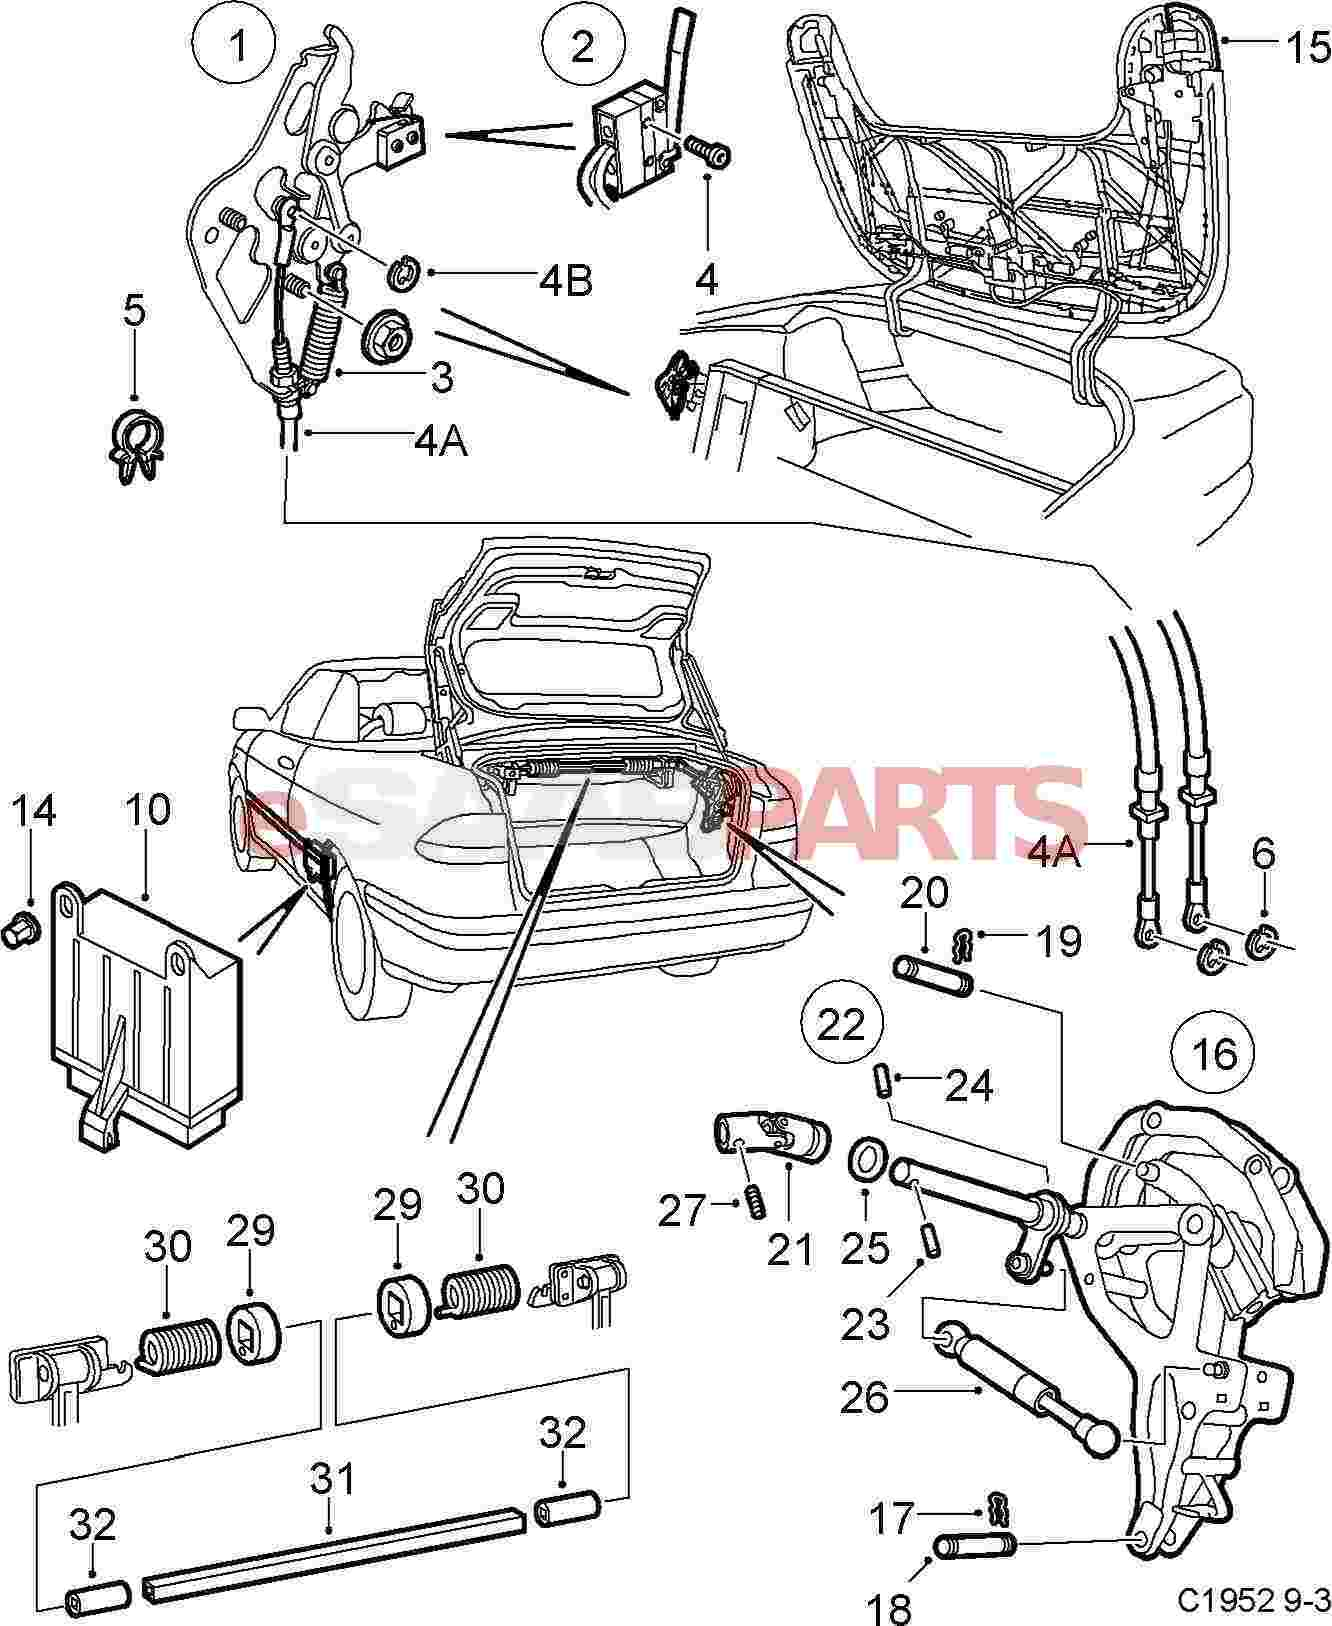 Saab 900 engine part diagram wiring diagram u2022 rh ch ionapp co 2004 saab convertible top diagram mercede sl500 convertible top diagram